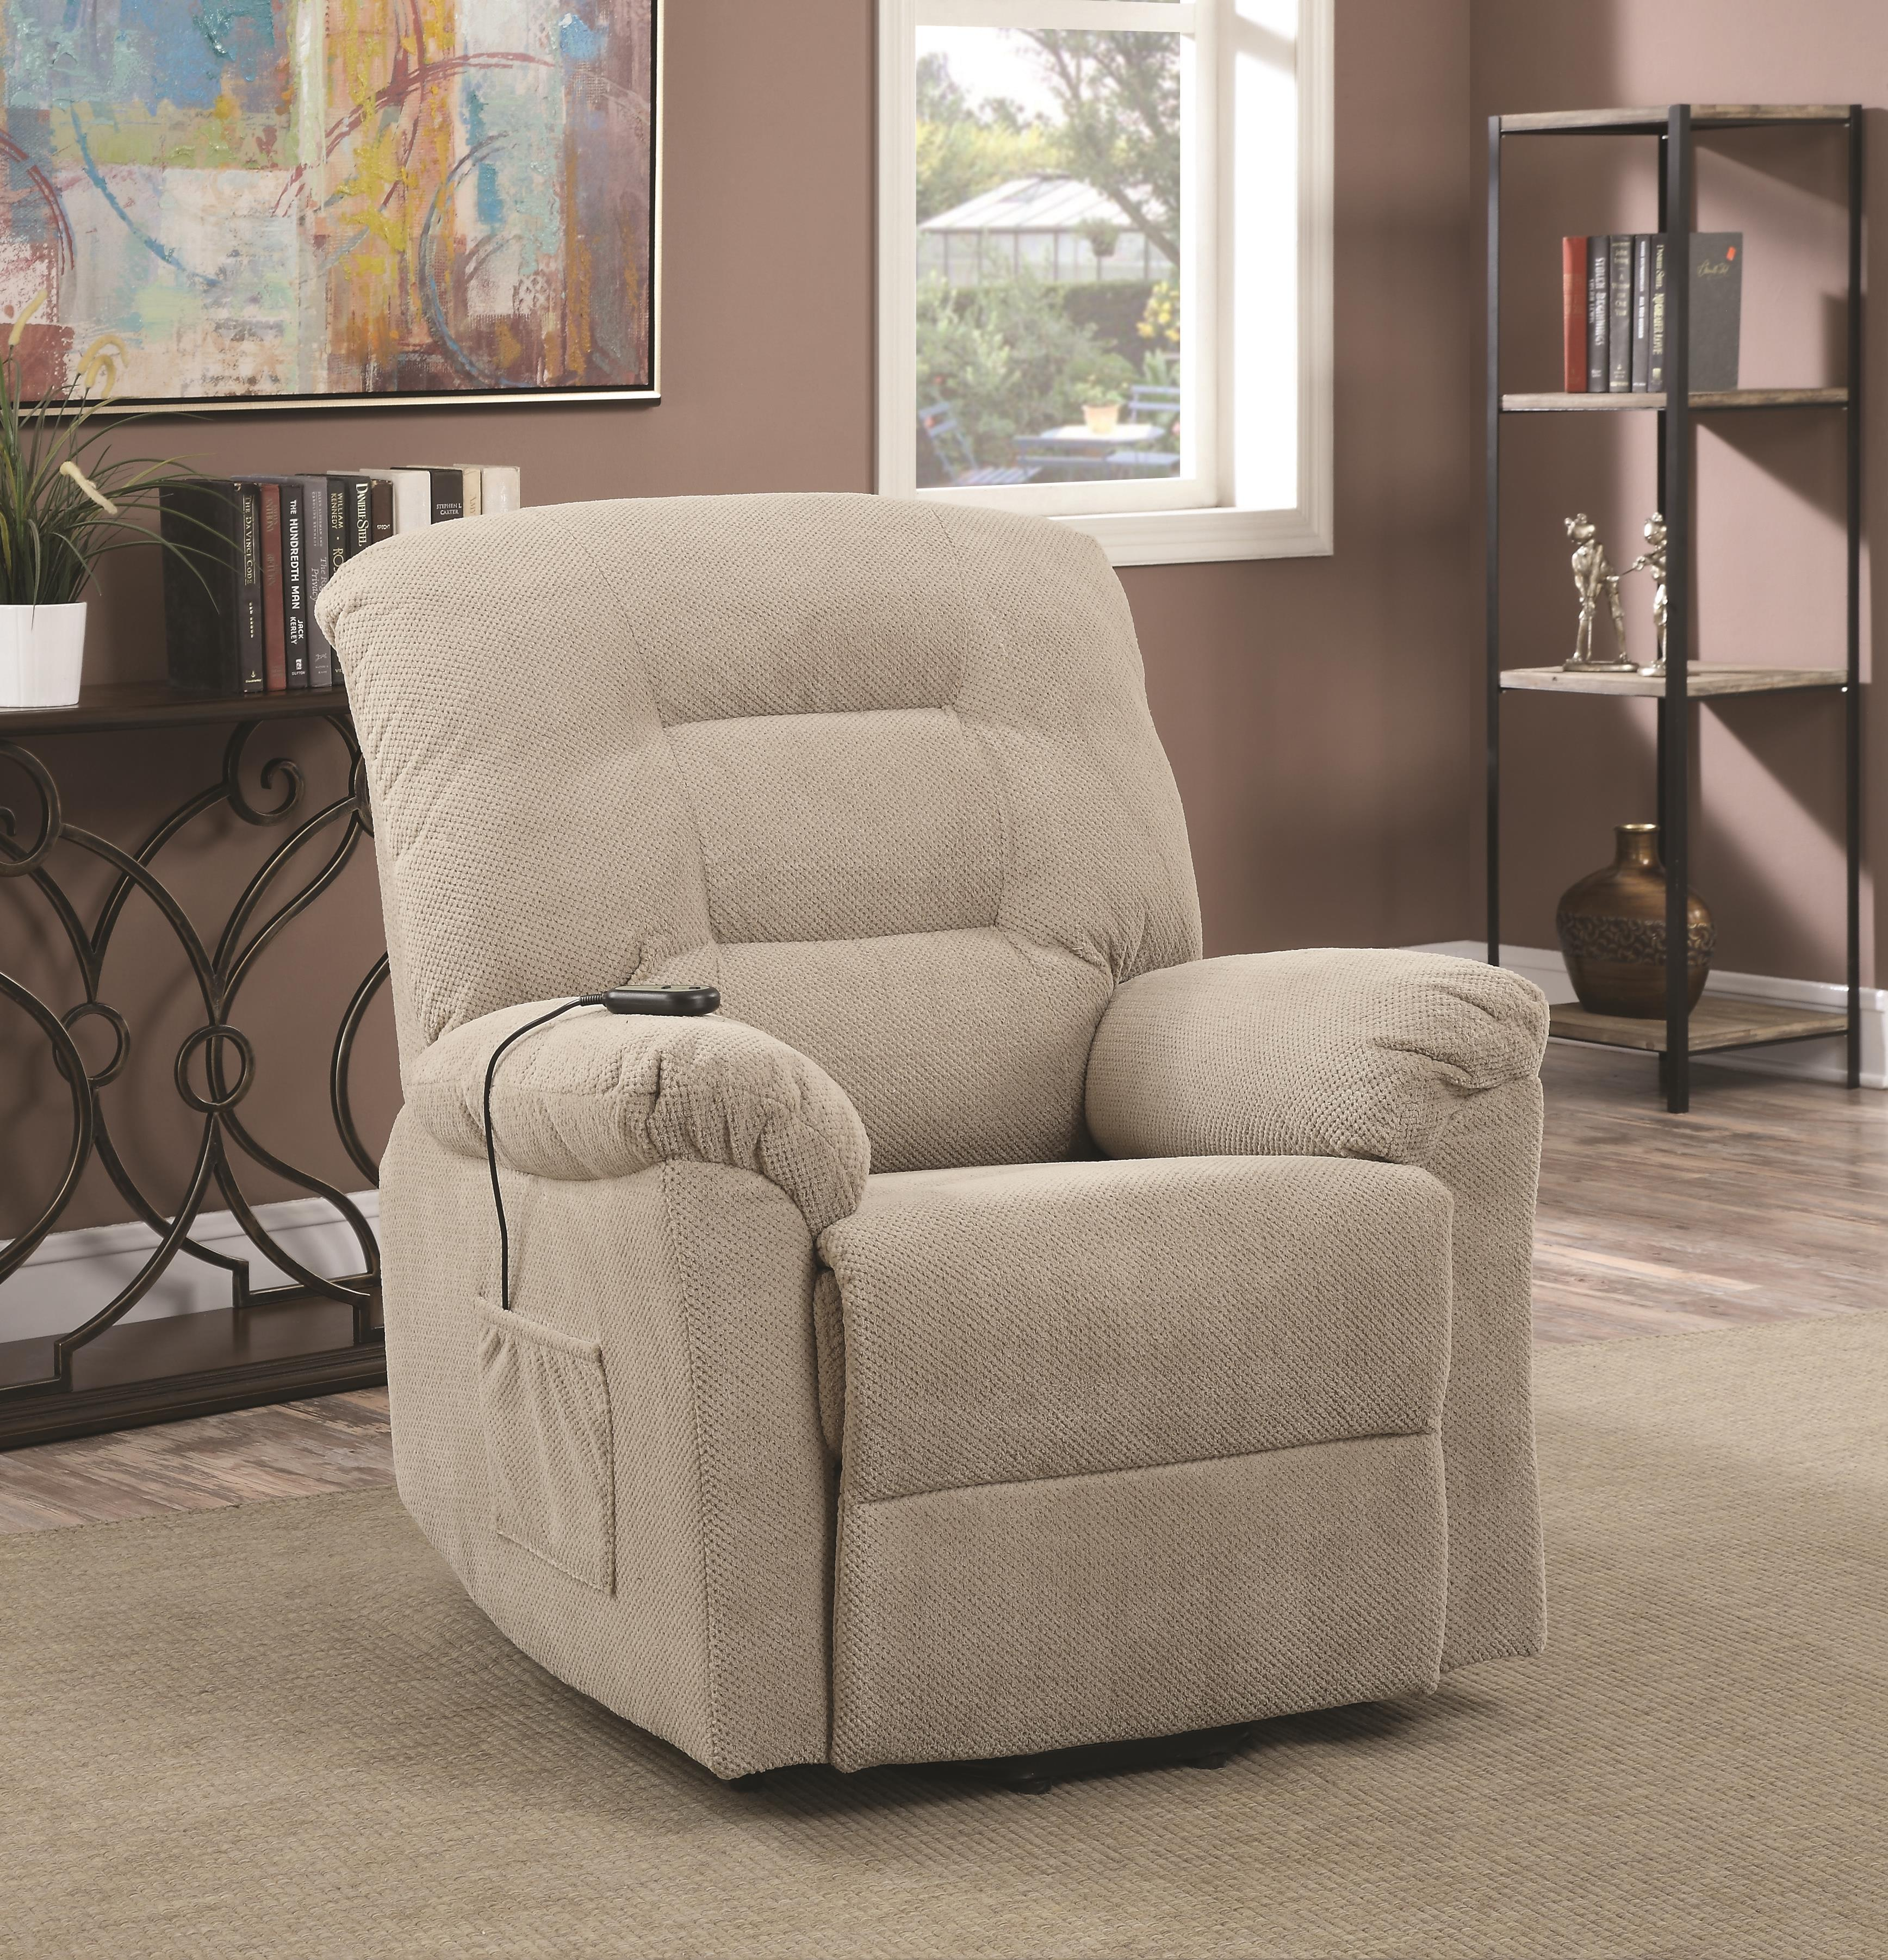 Coaster Recliners Power Lift Recliner - Item Number: 600399